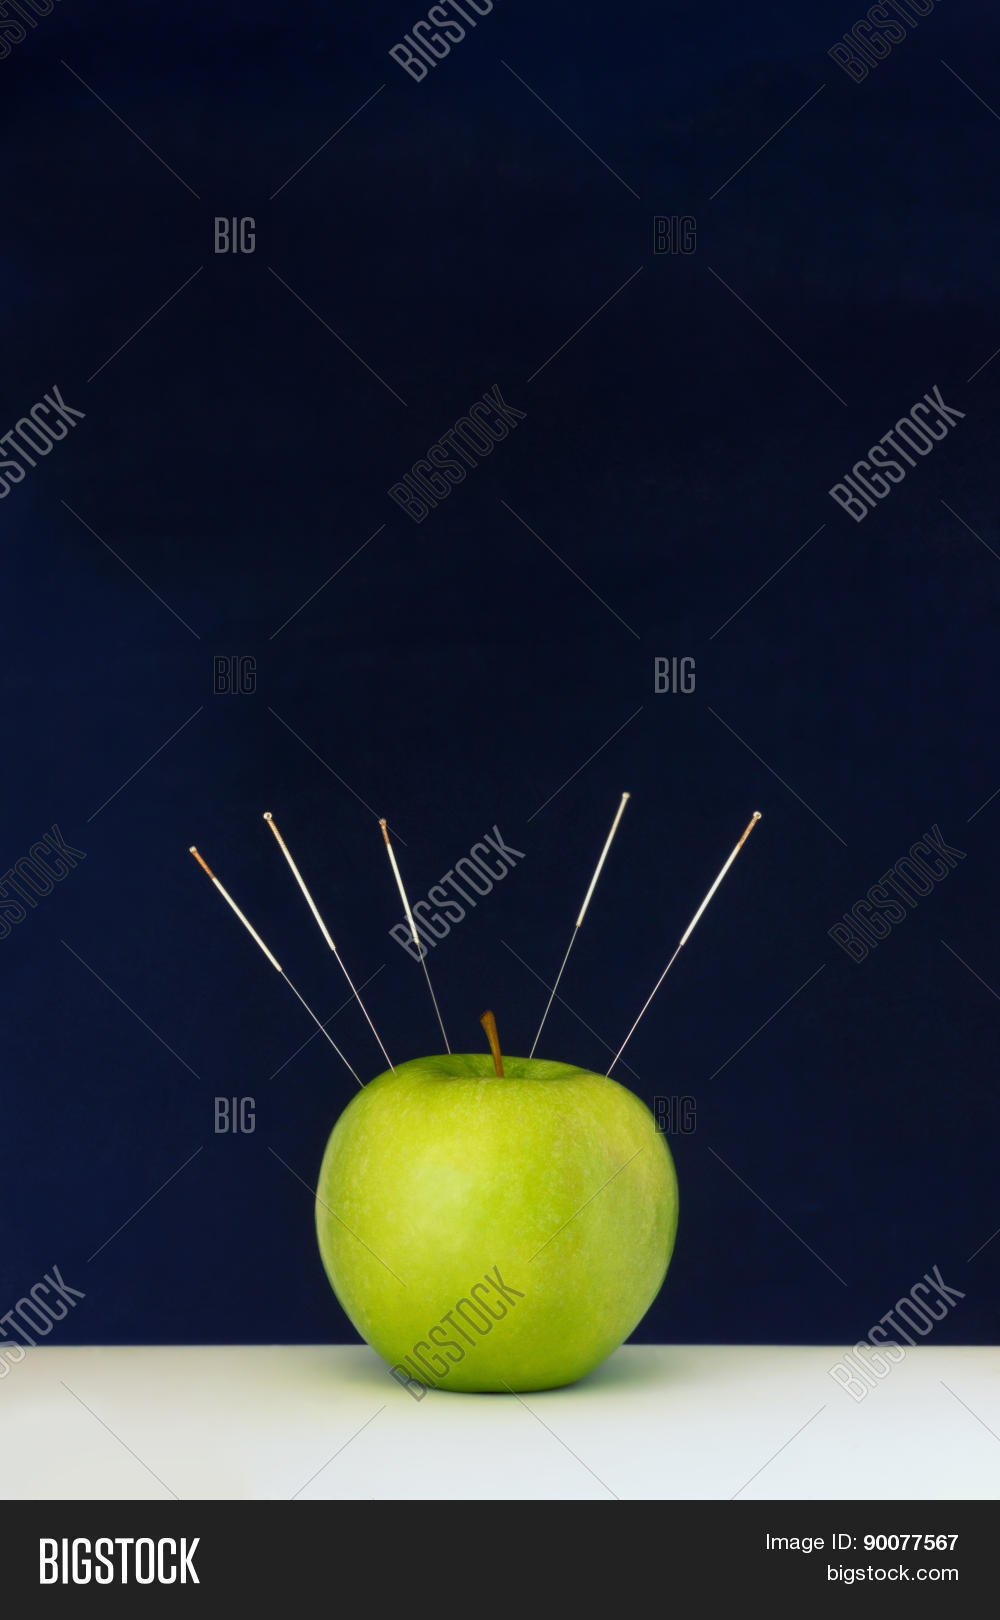 Acupuncture Needles Image Photo Free Trial Bigstock